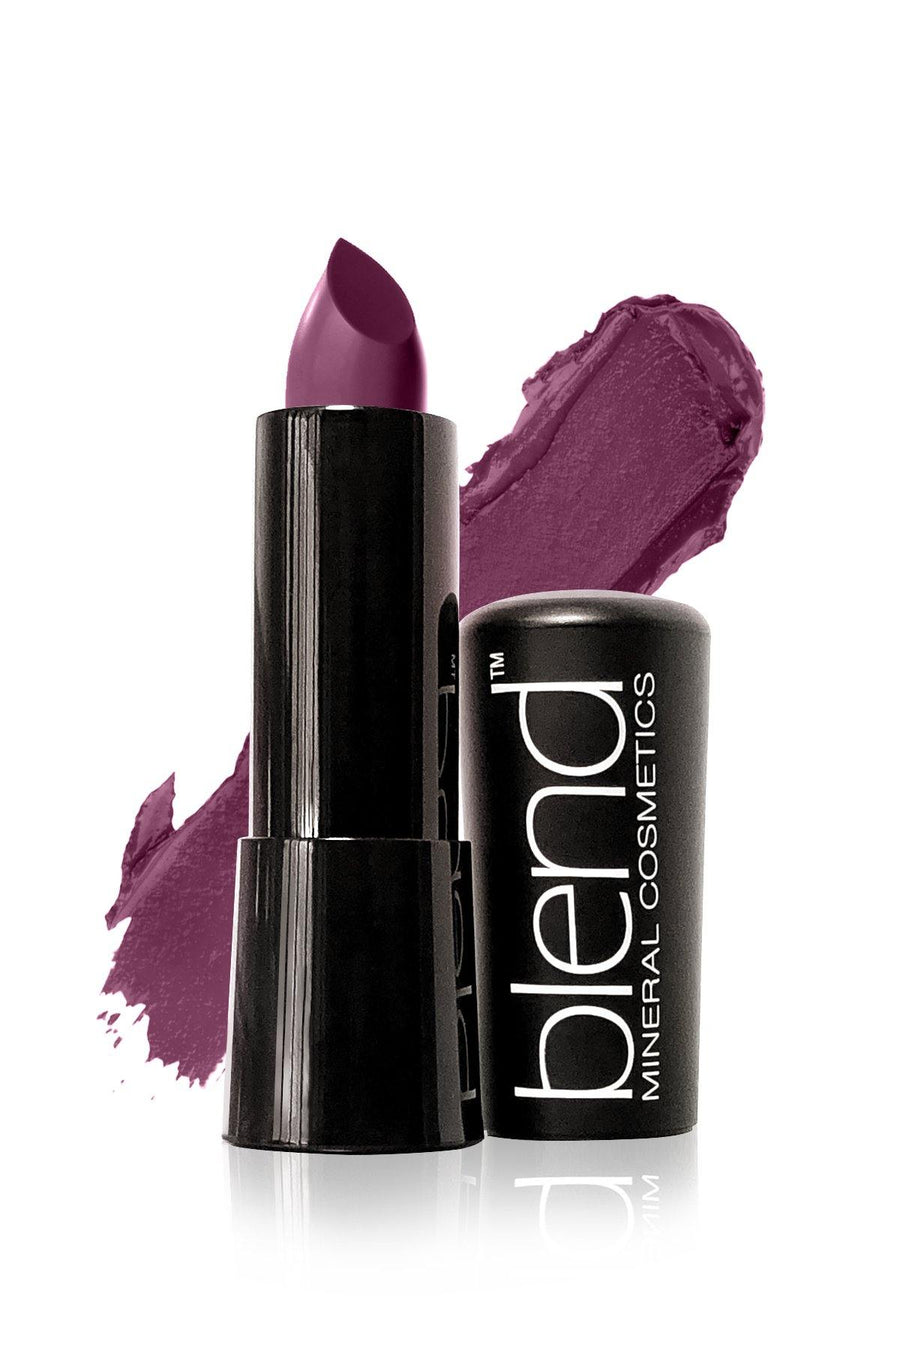 Matte Lipstick #21 - Purple - Blend Mineral Cosmetics